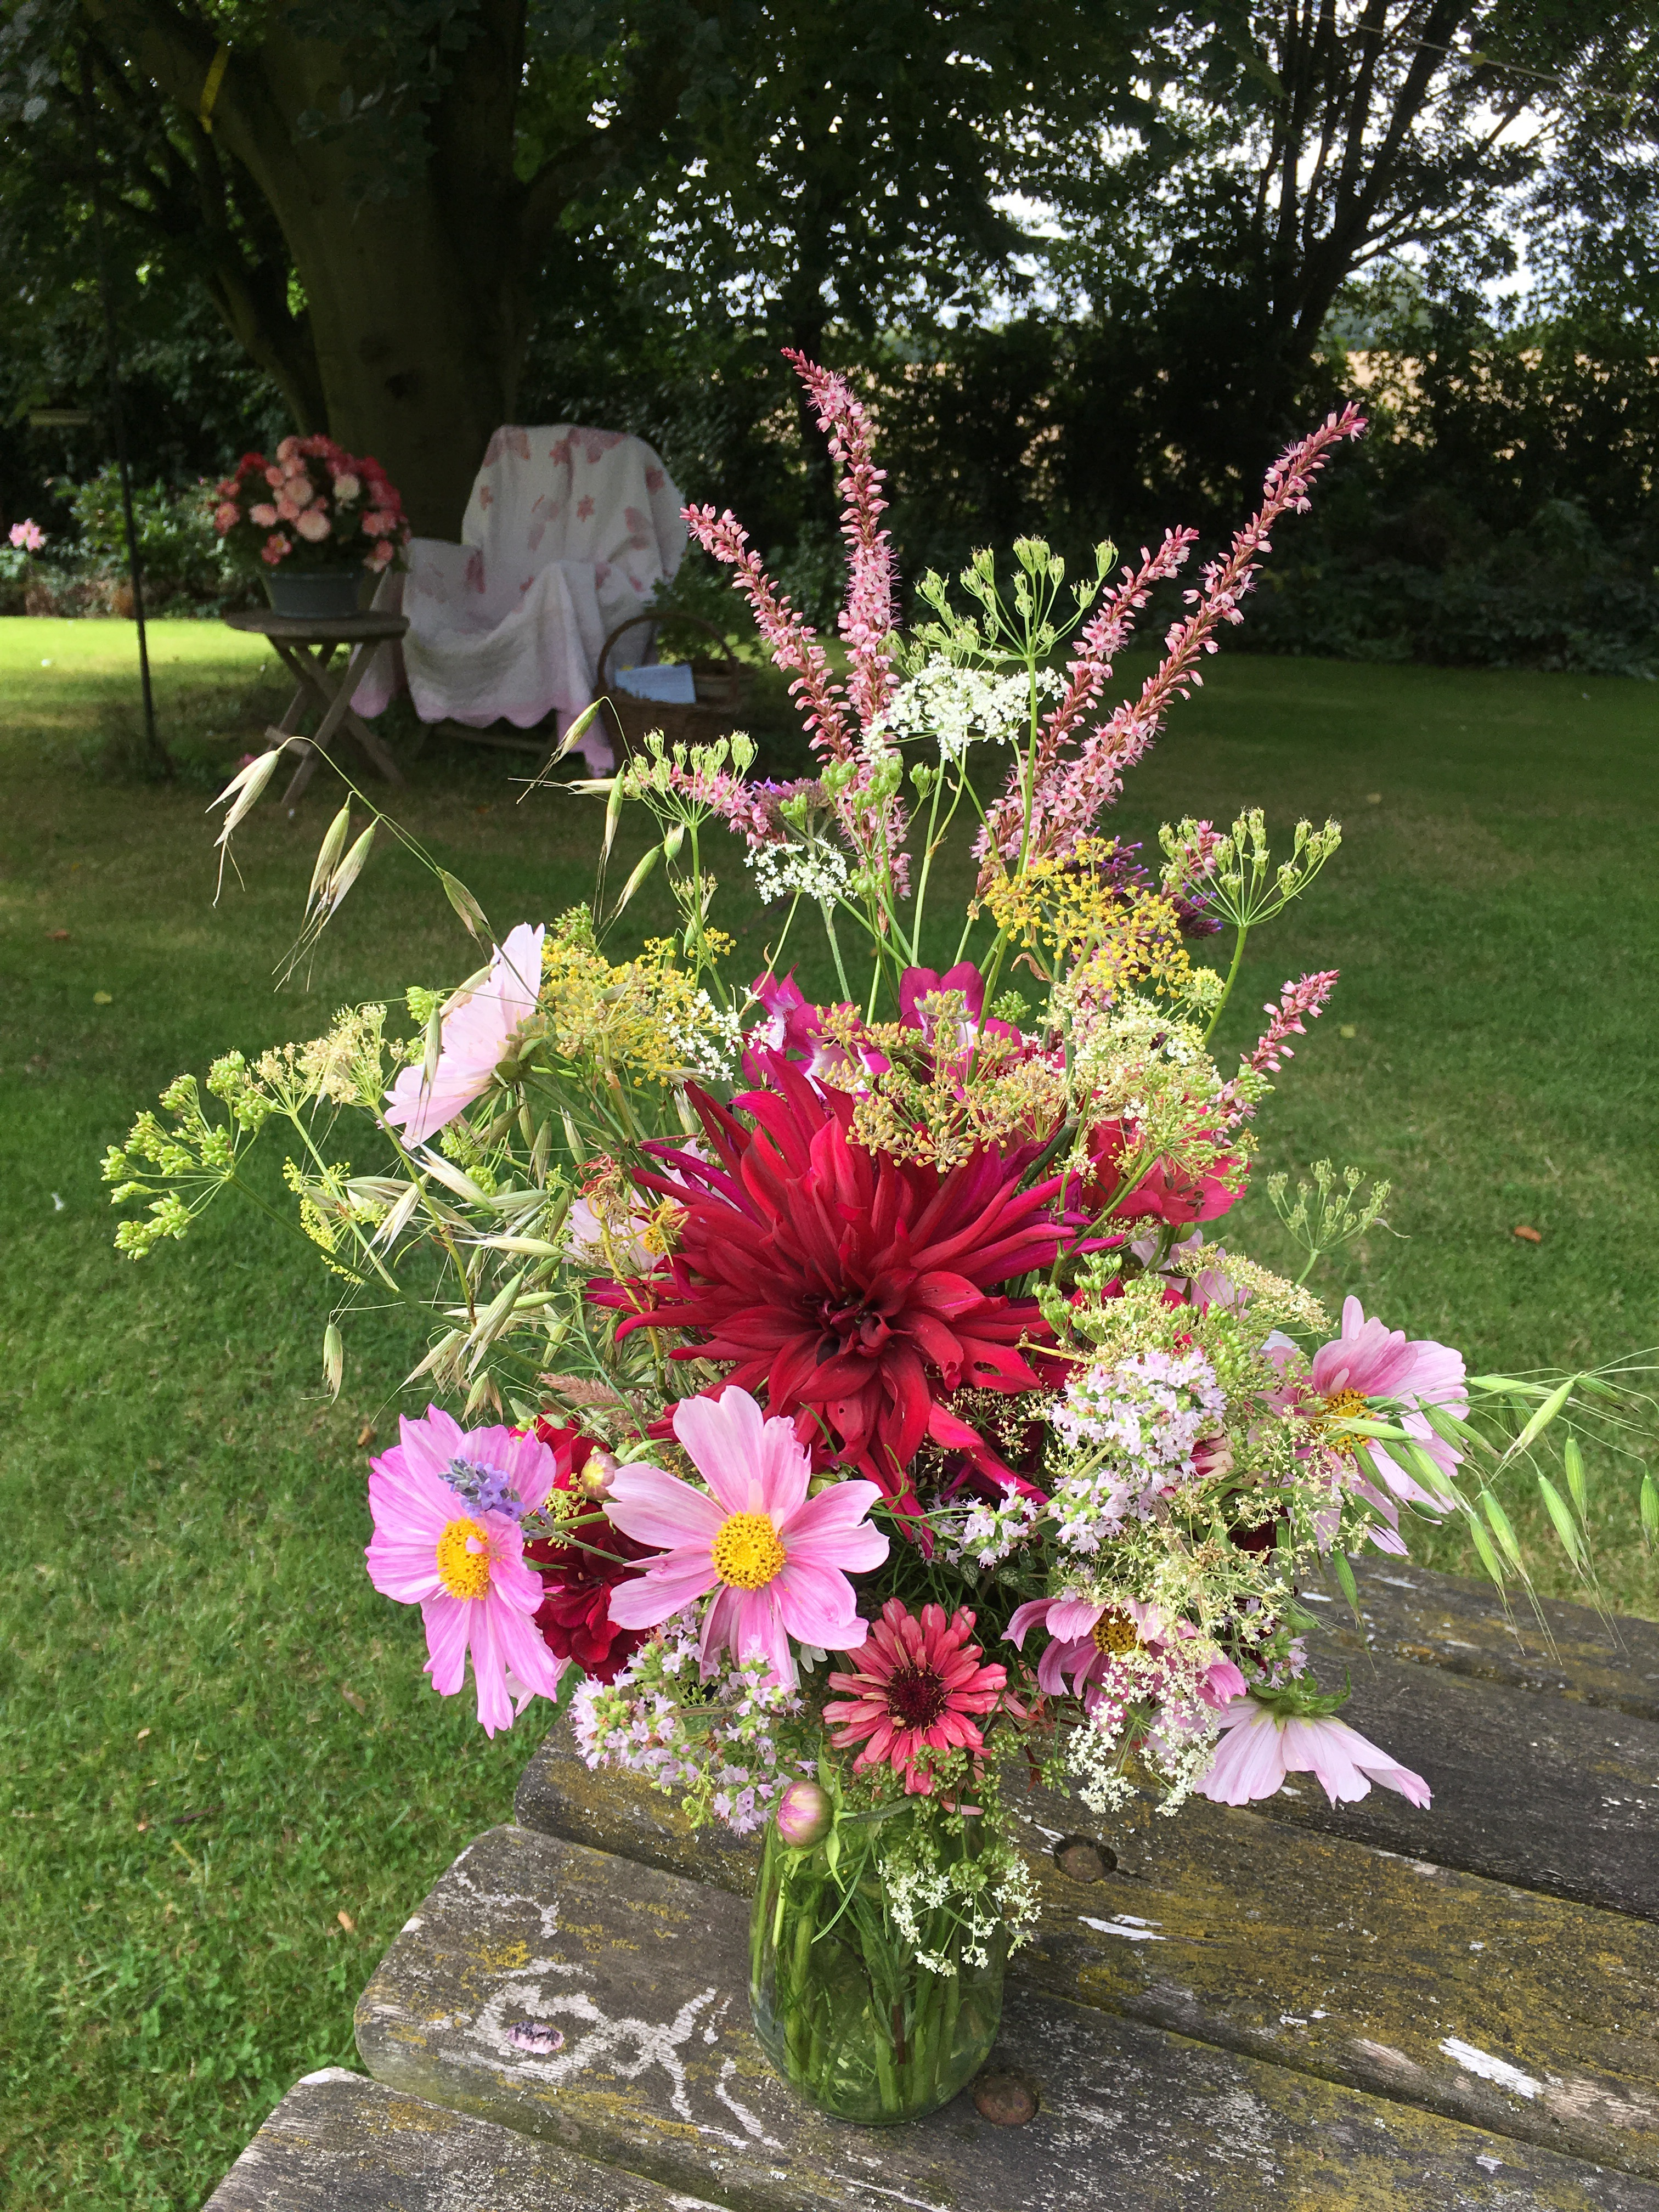 Wordlesswednesday garden table flowers bramble garden cheap bed quilts over the rickety old chairs instant transformation i hope you are all enjoying your summer and getting to spend time in the garden izmirmasajfo